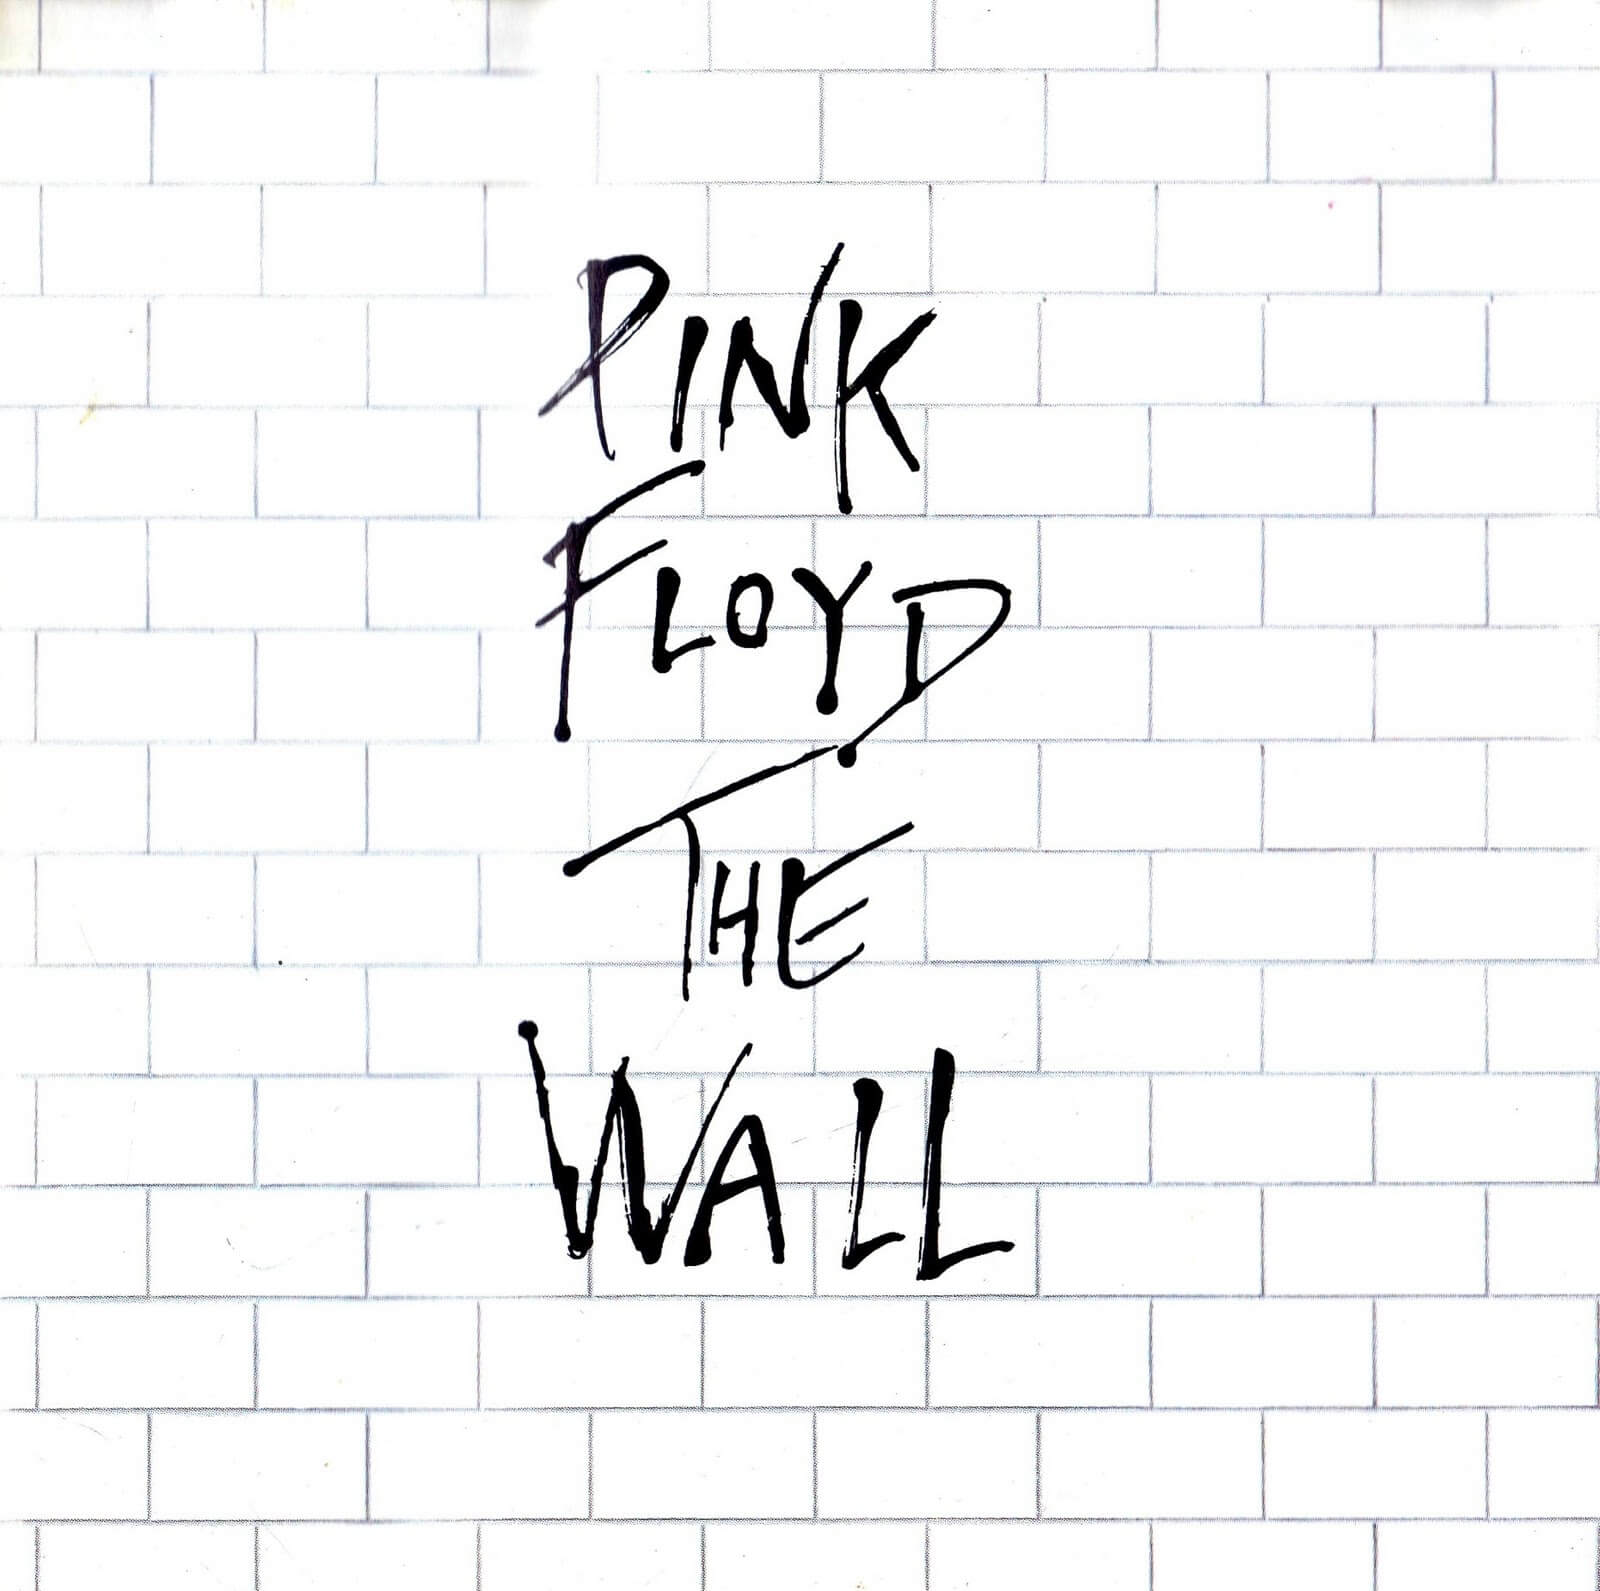 Pink Floyd The Wall - Discography